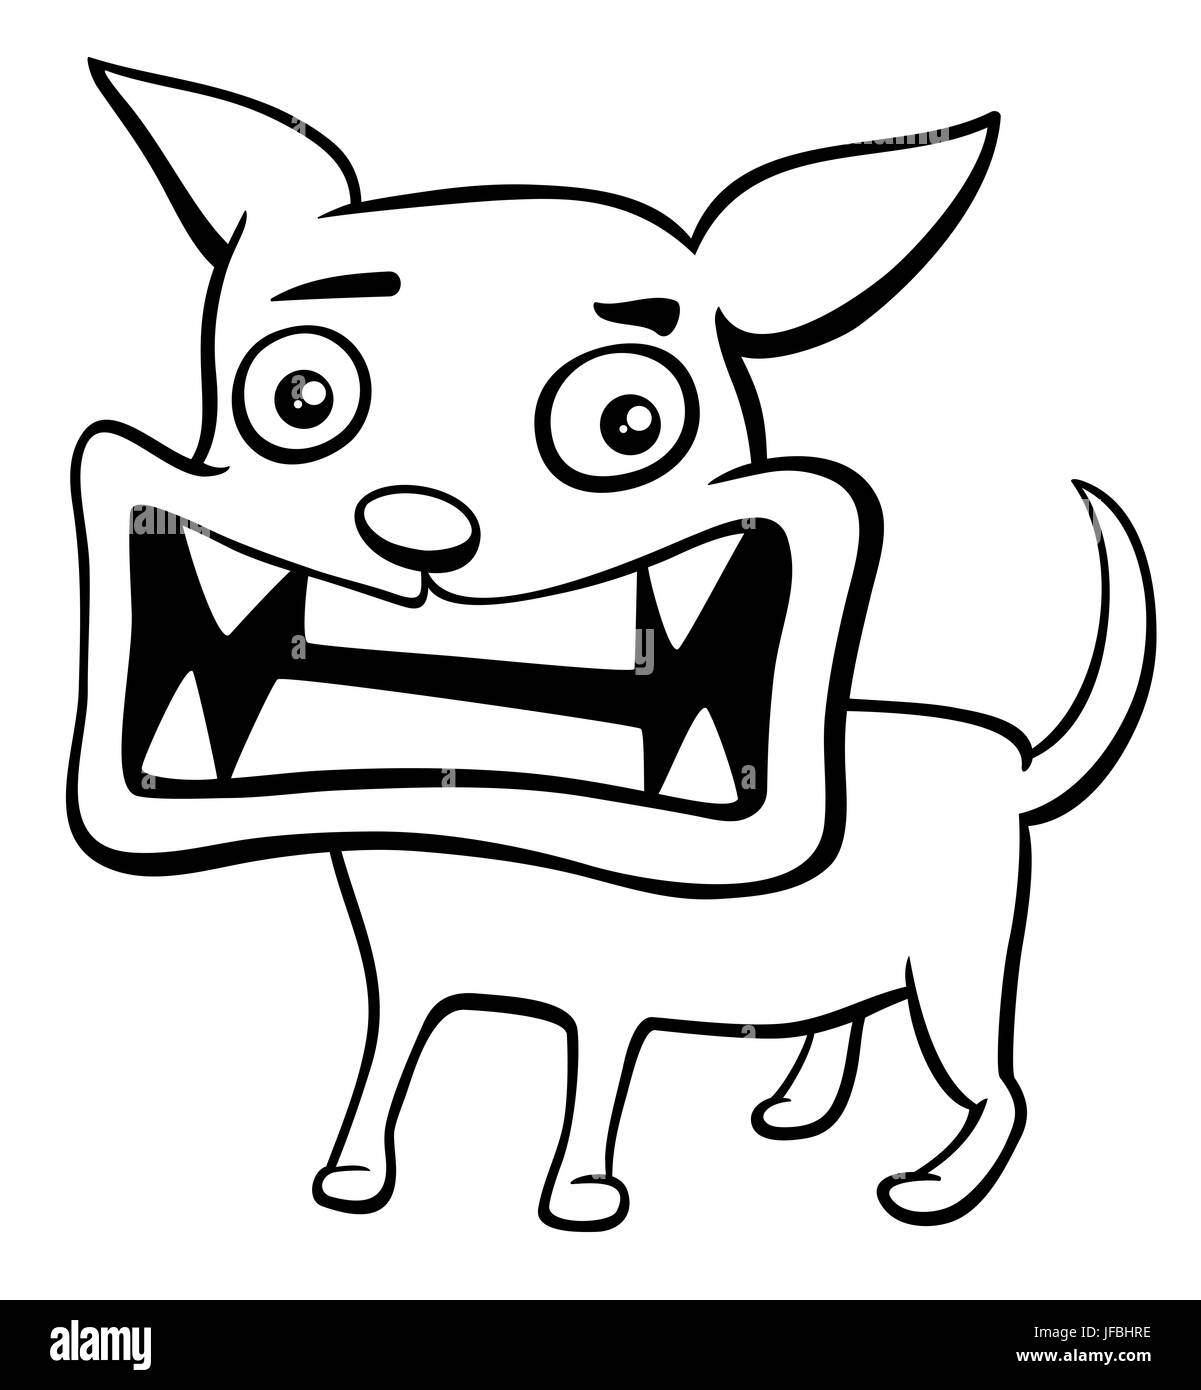 Funny Angry White Chihuahua Dog Imágenes De Stock & Funny Angry ...